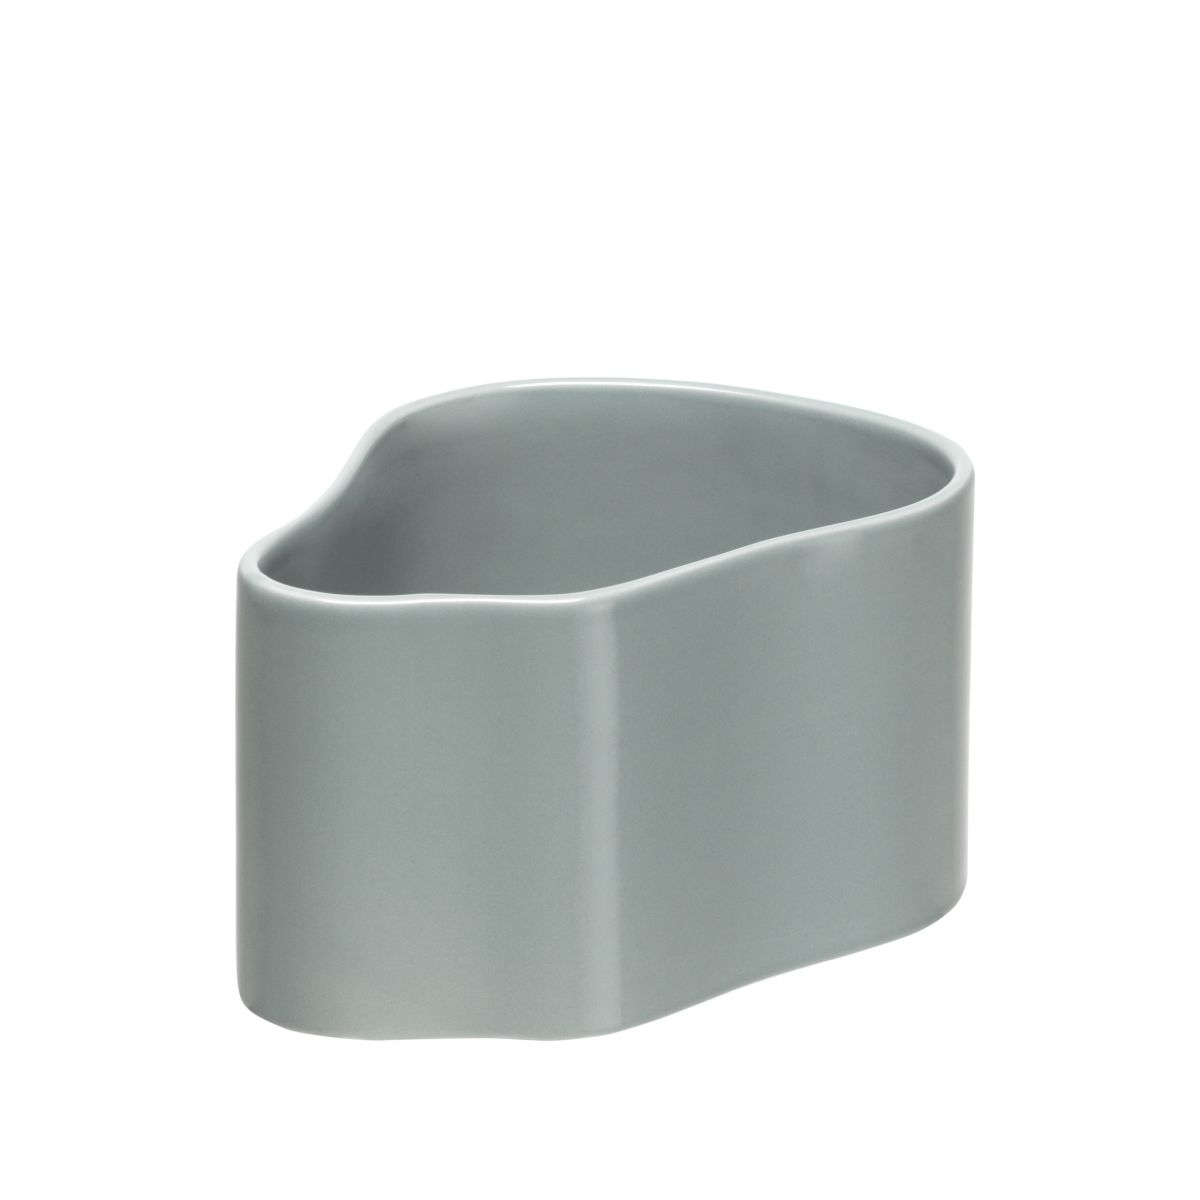 Plant pot shape A, size S, Light grey gloss_F